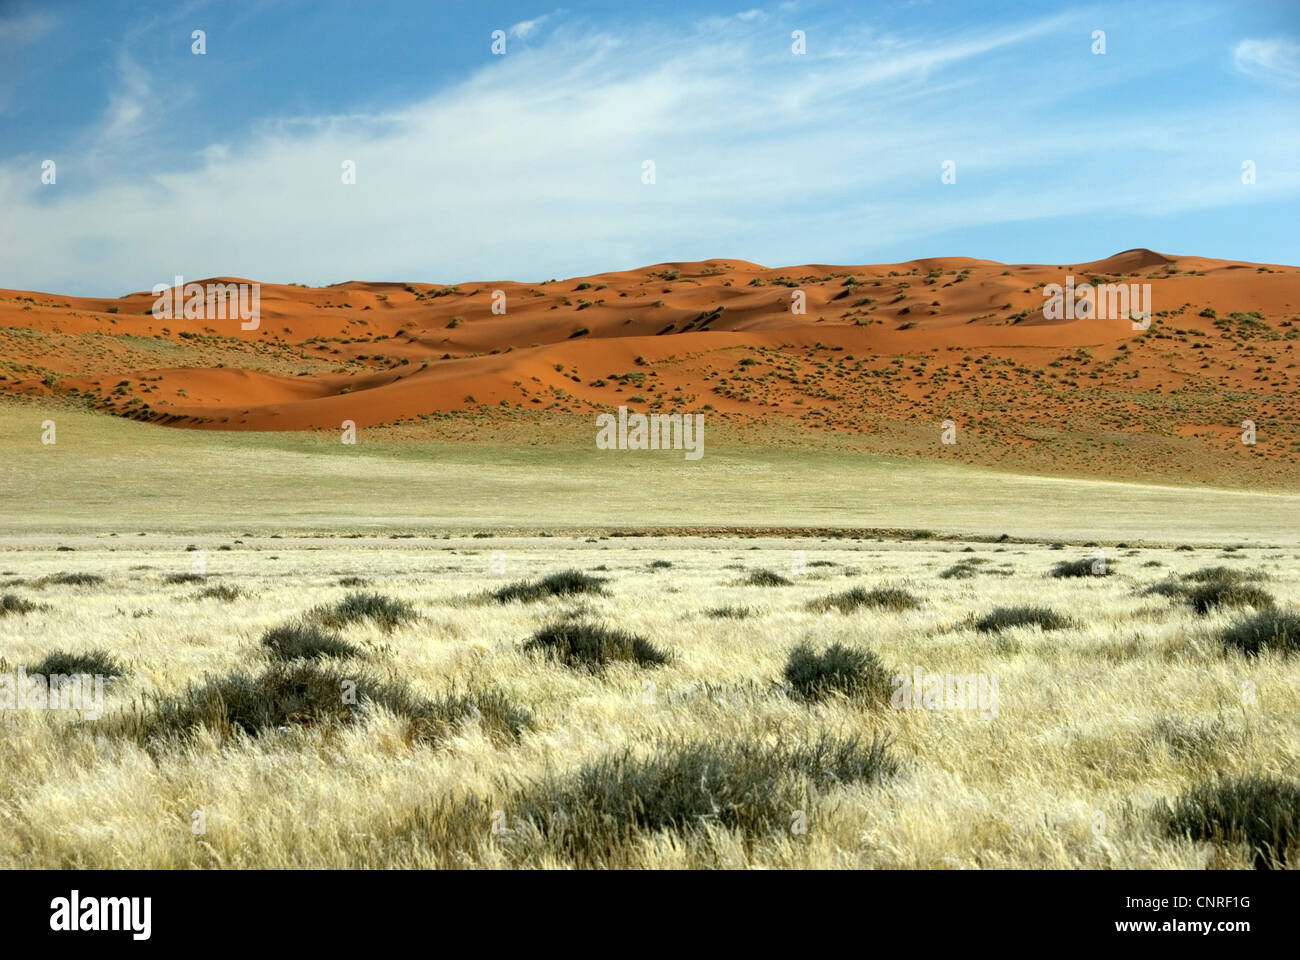 red dunes in the desert, Namibia, D707 Stock Photo